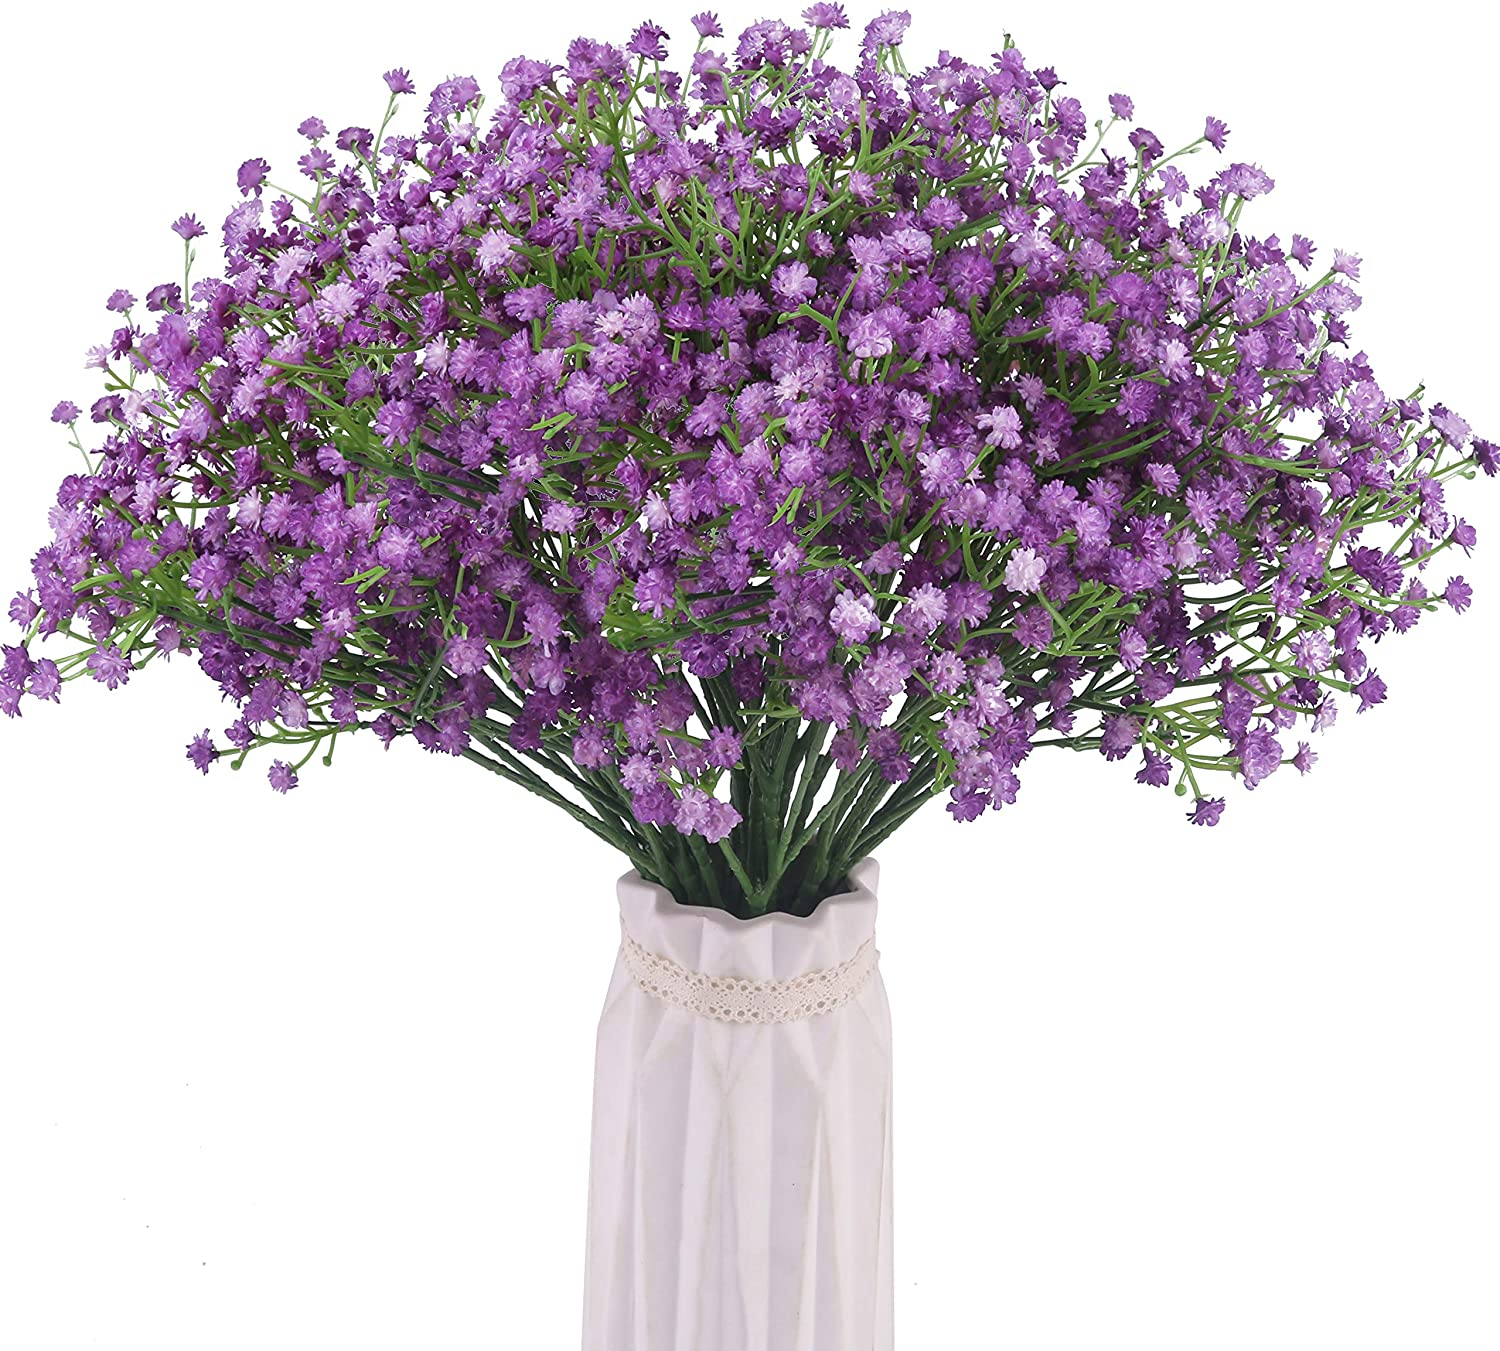 BOMAROLAN Artificial Baby Breath Flowers Fake Gypsophila Bouquets 12 Pcs Fake Real Touch Flowers for Wedding Decor DIY Home Party(Purple)